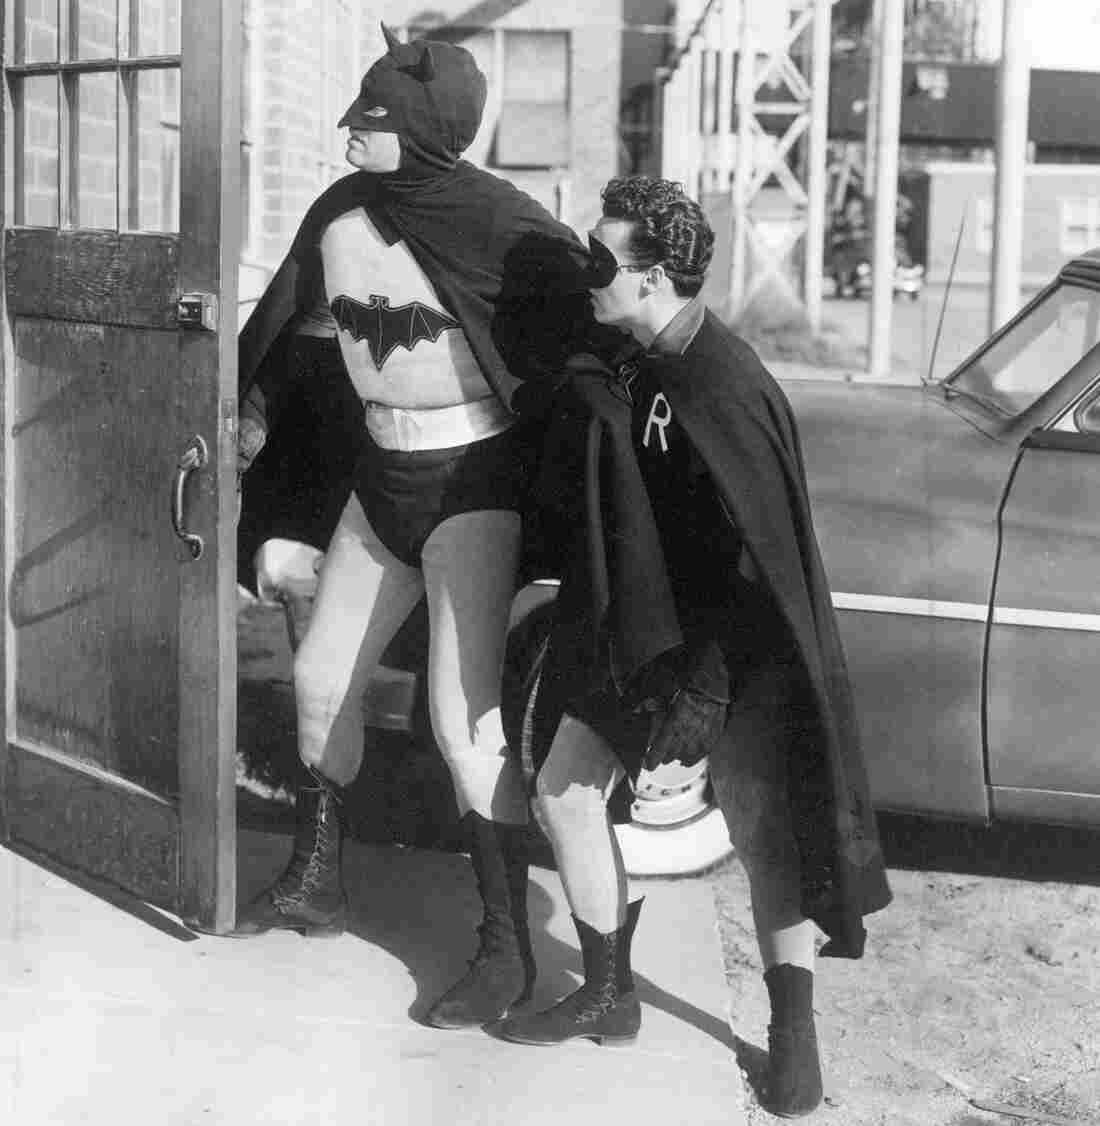 Robert Lowery as Batman and John Duncan as Robin in 1949's Batman and Robin.